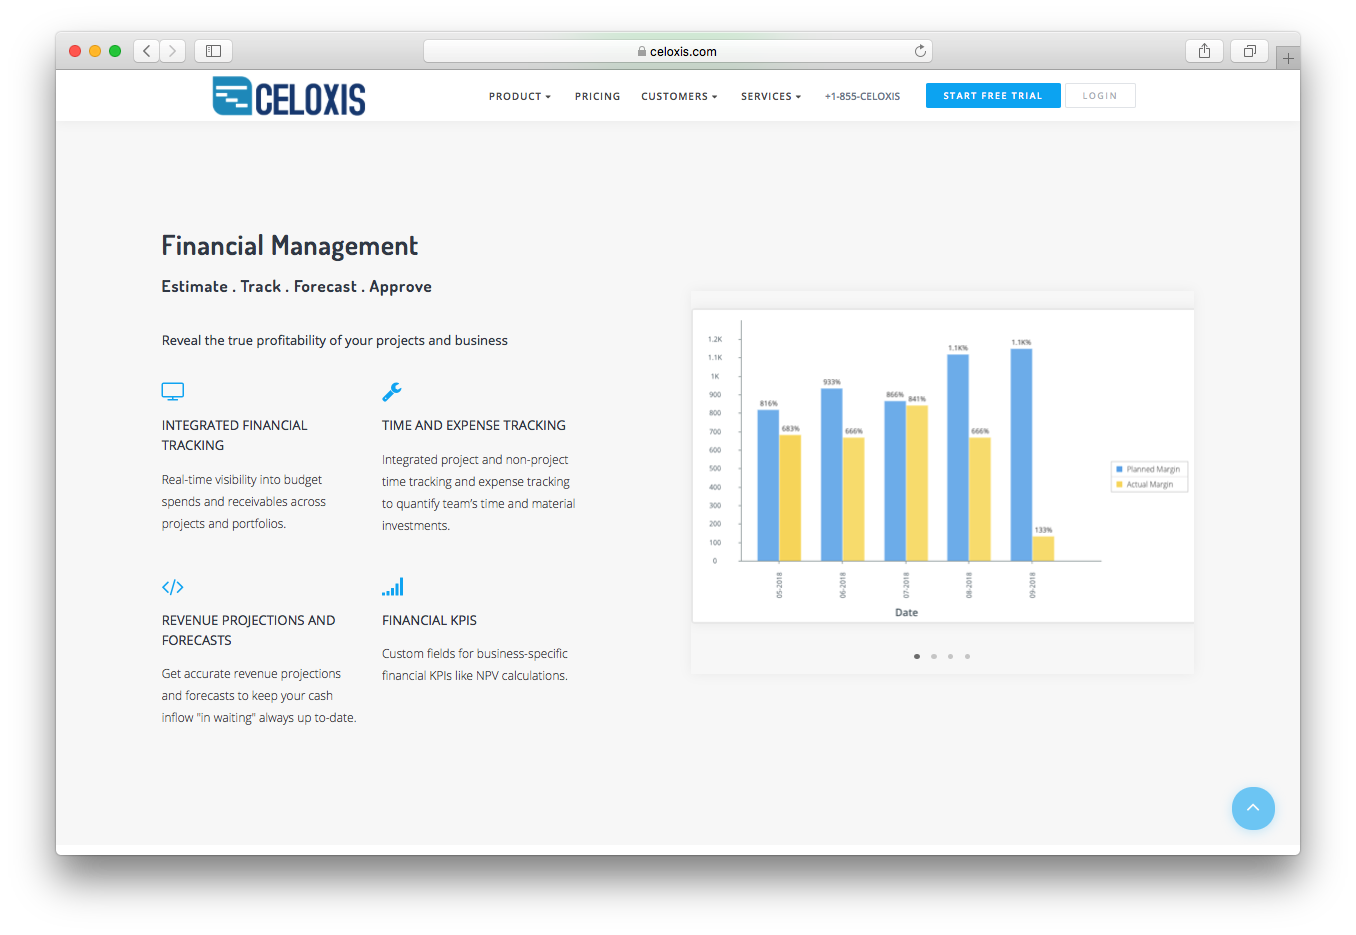 Celoxis financial management estimate track forecast approve profitability